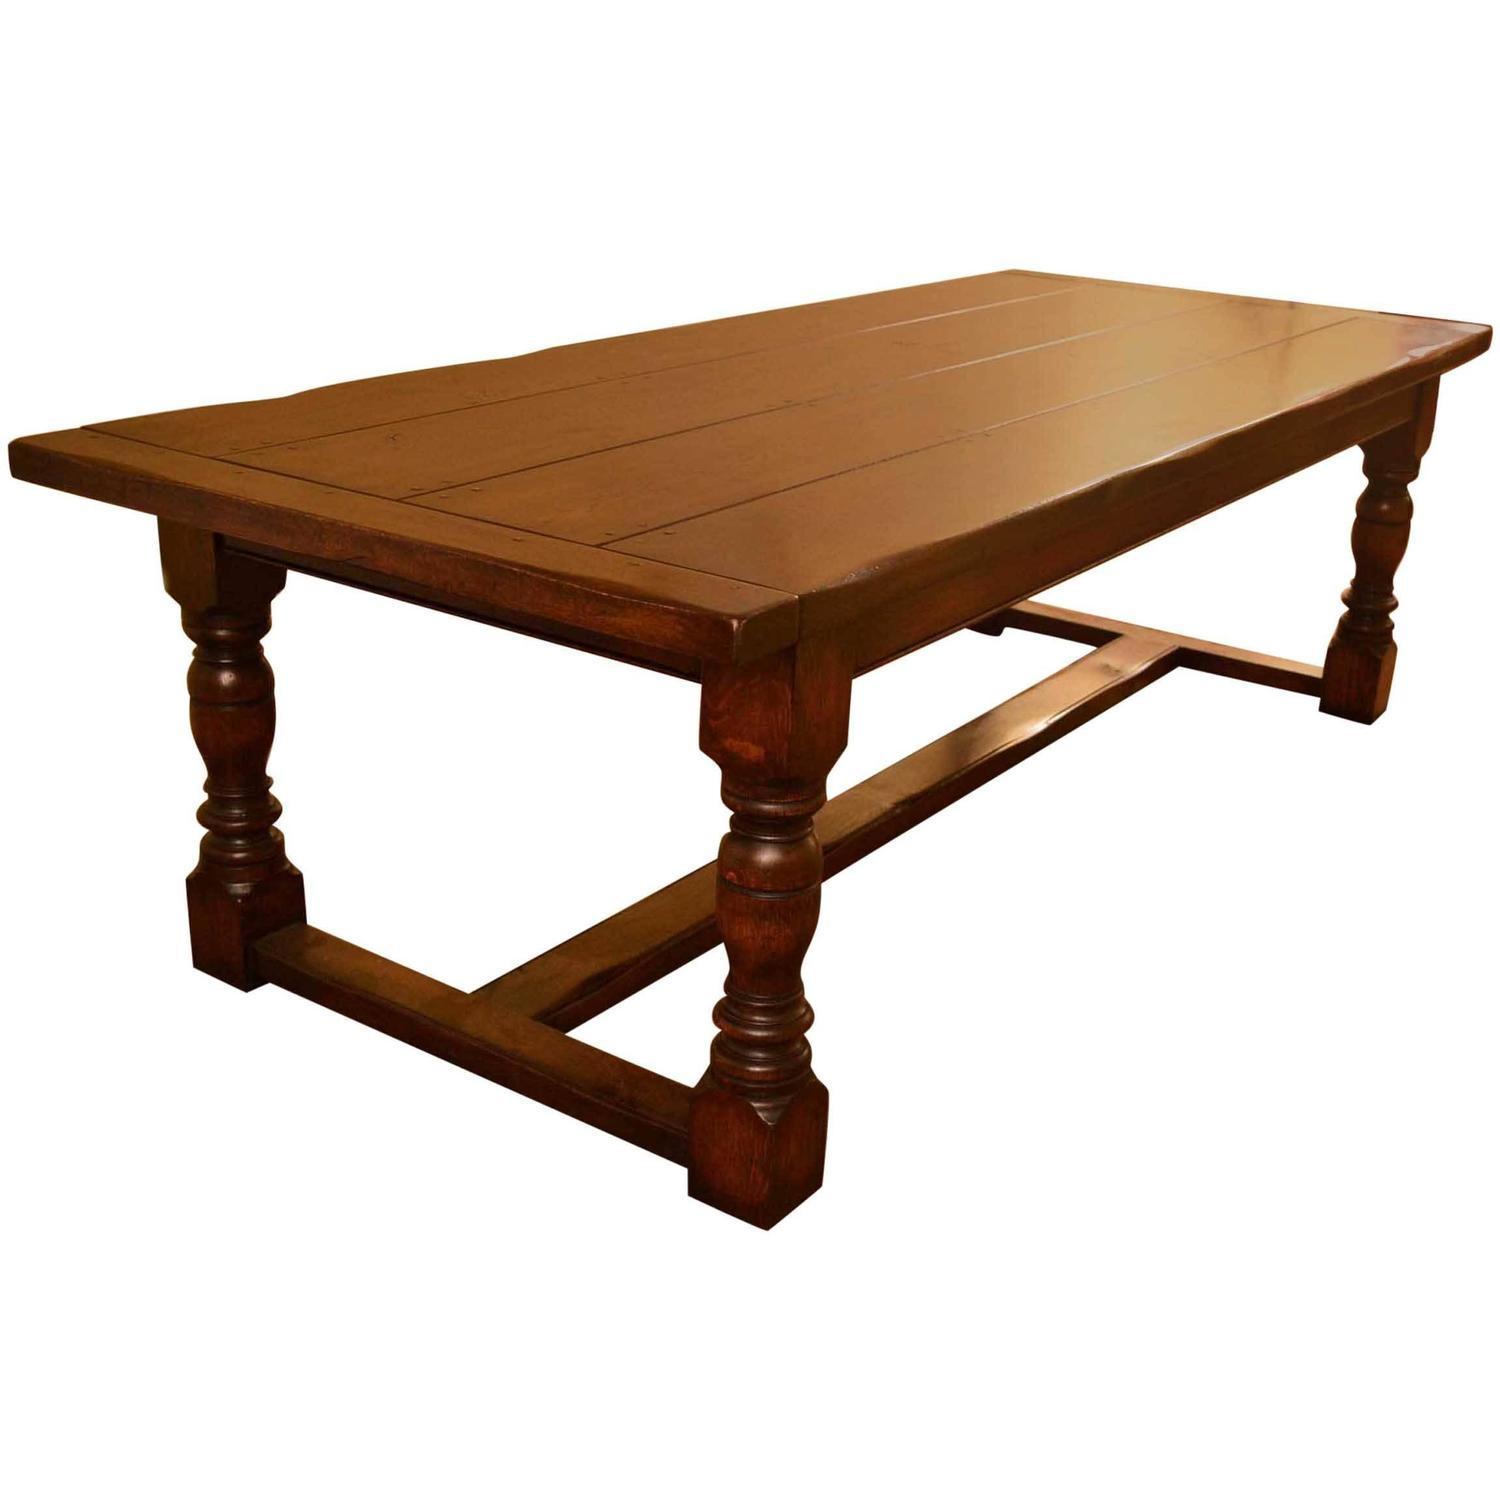 Vintage English Solid Oak Refectory Dining Table 8 Ft 6 X 3 Ft 6